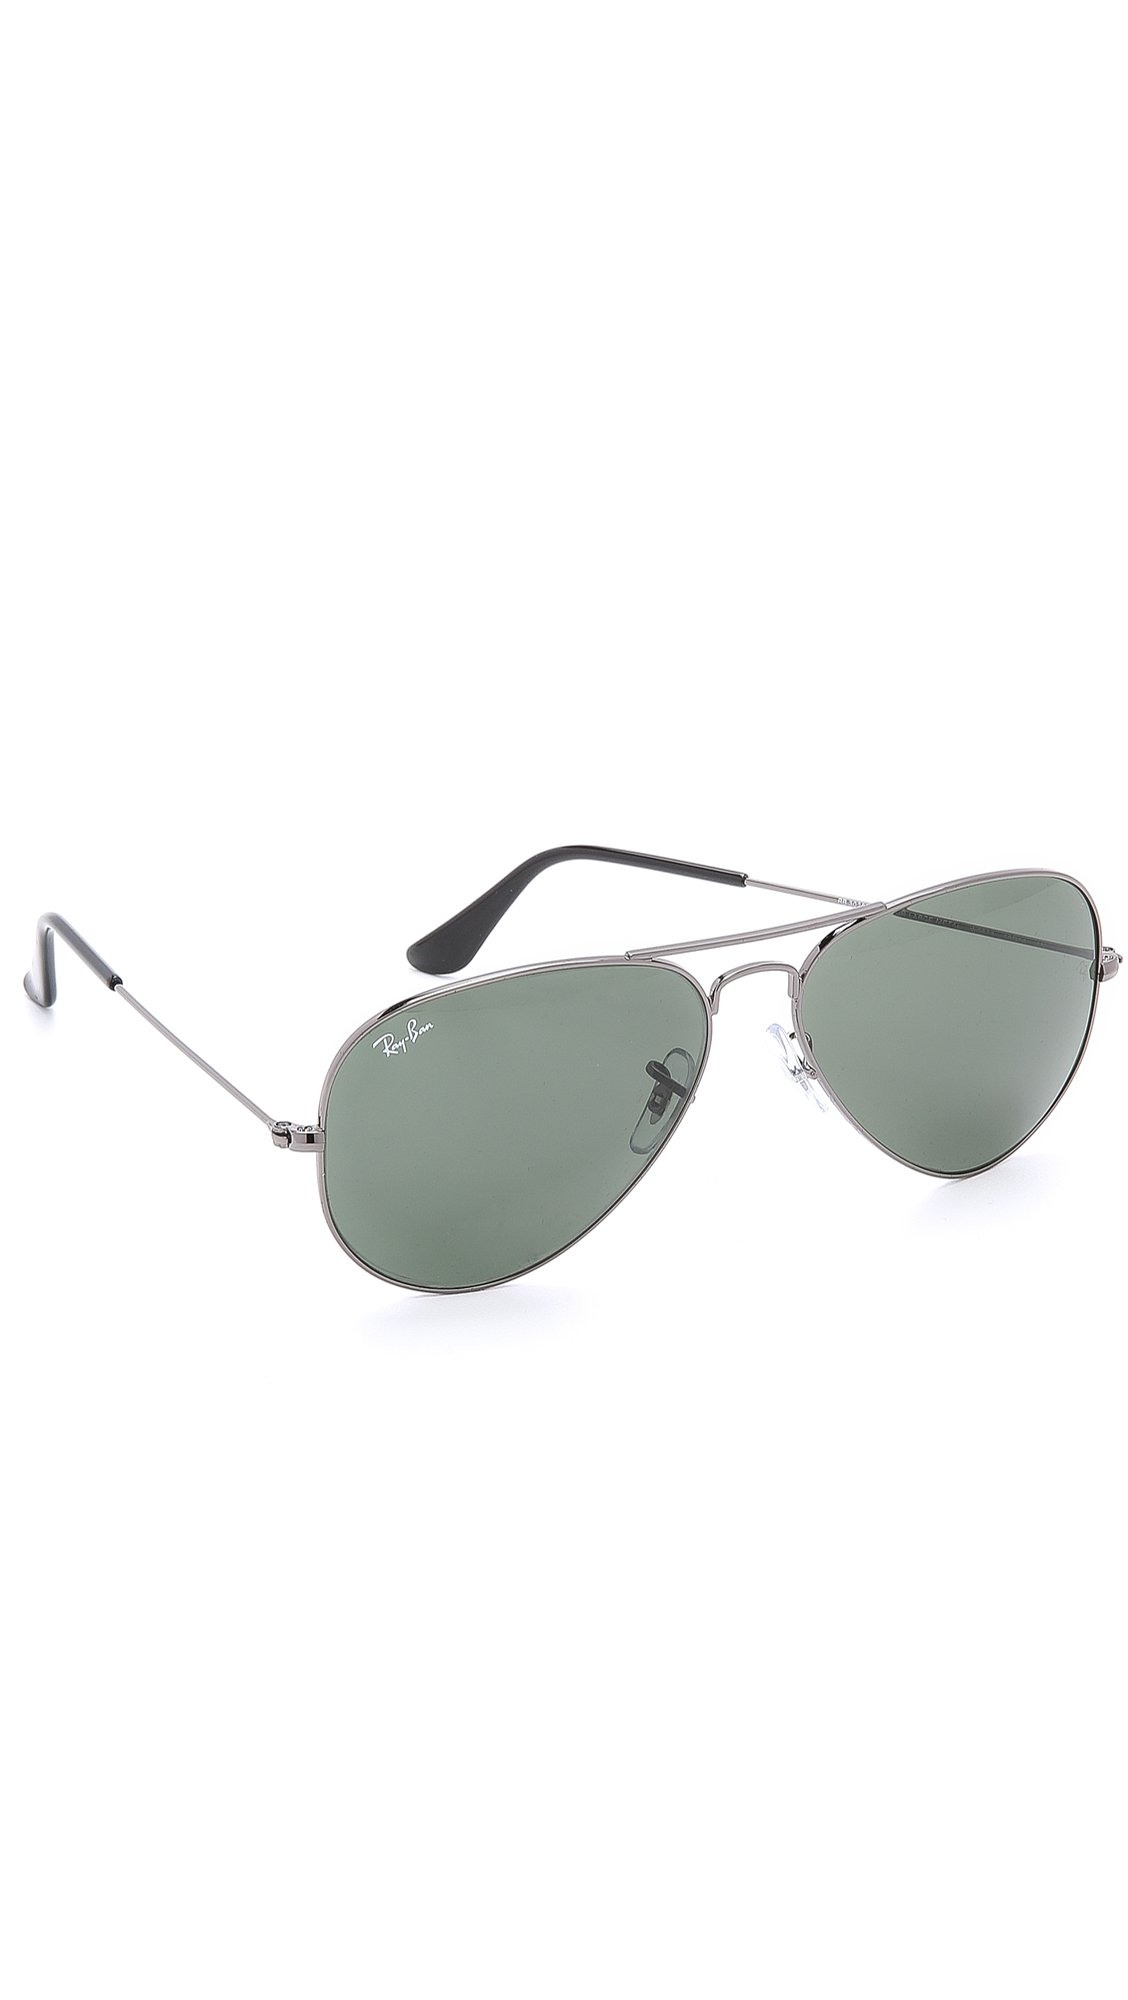 Ray-Ban Classic Aviator Sunglasses, Gunmetal/Green Classic by Ray-Ban